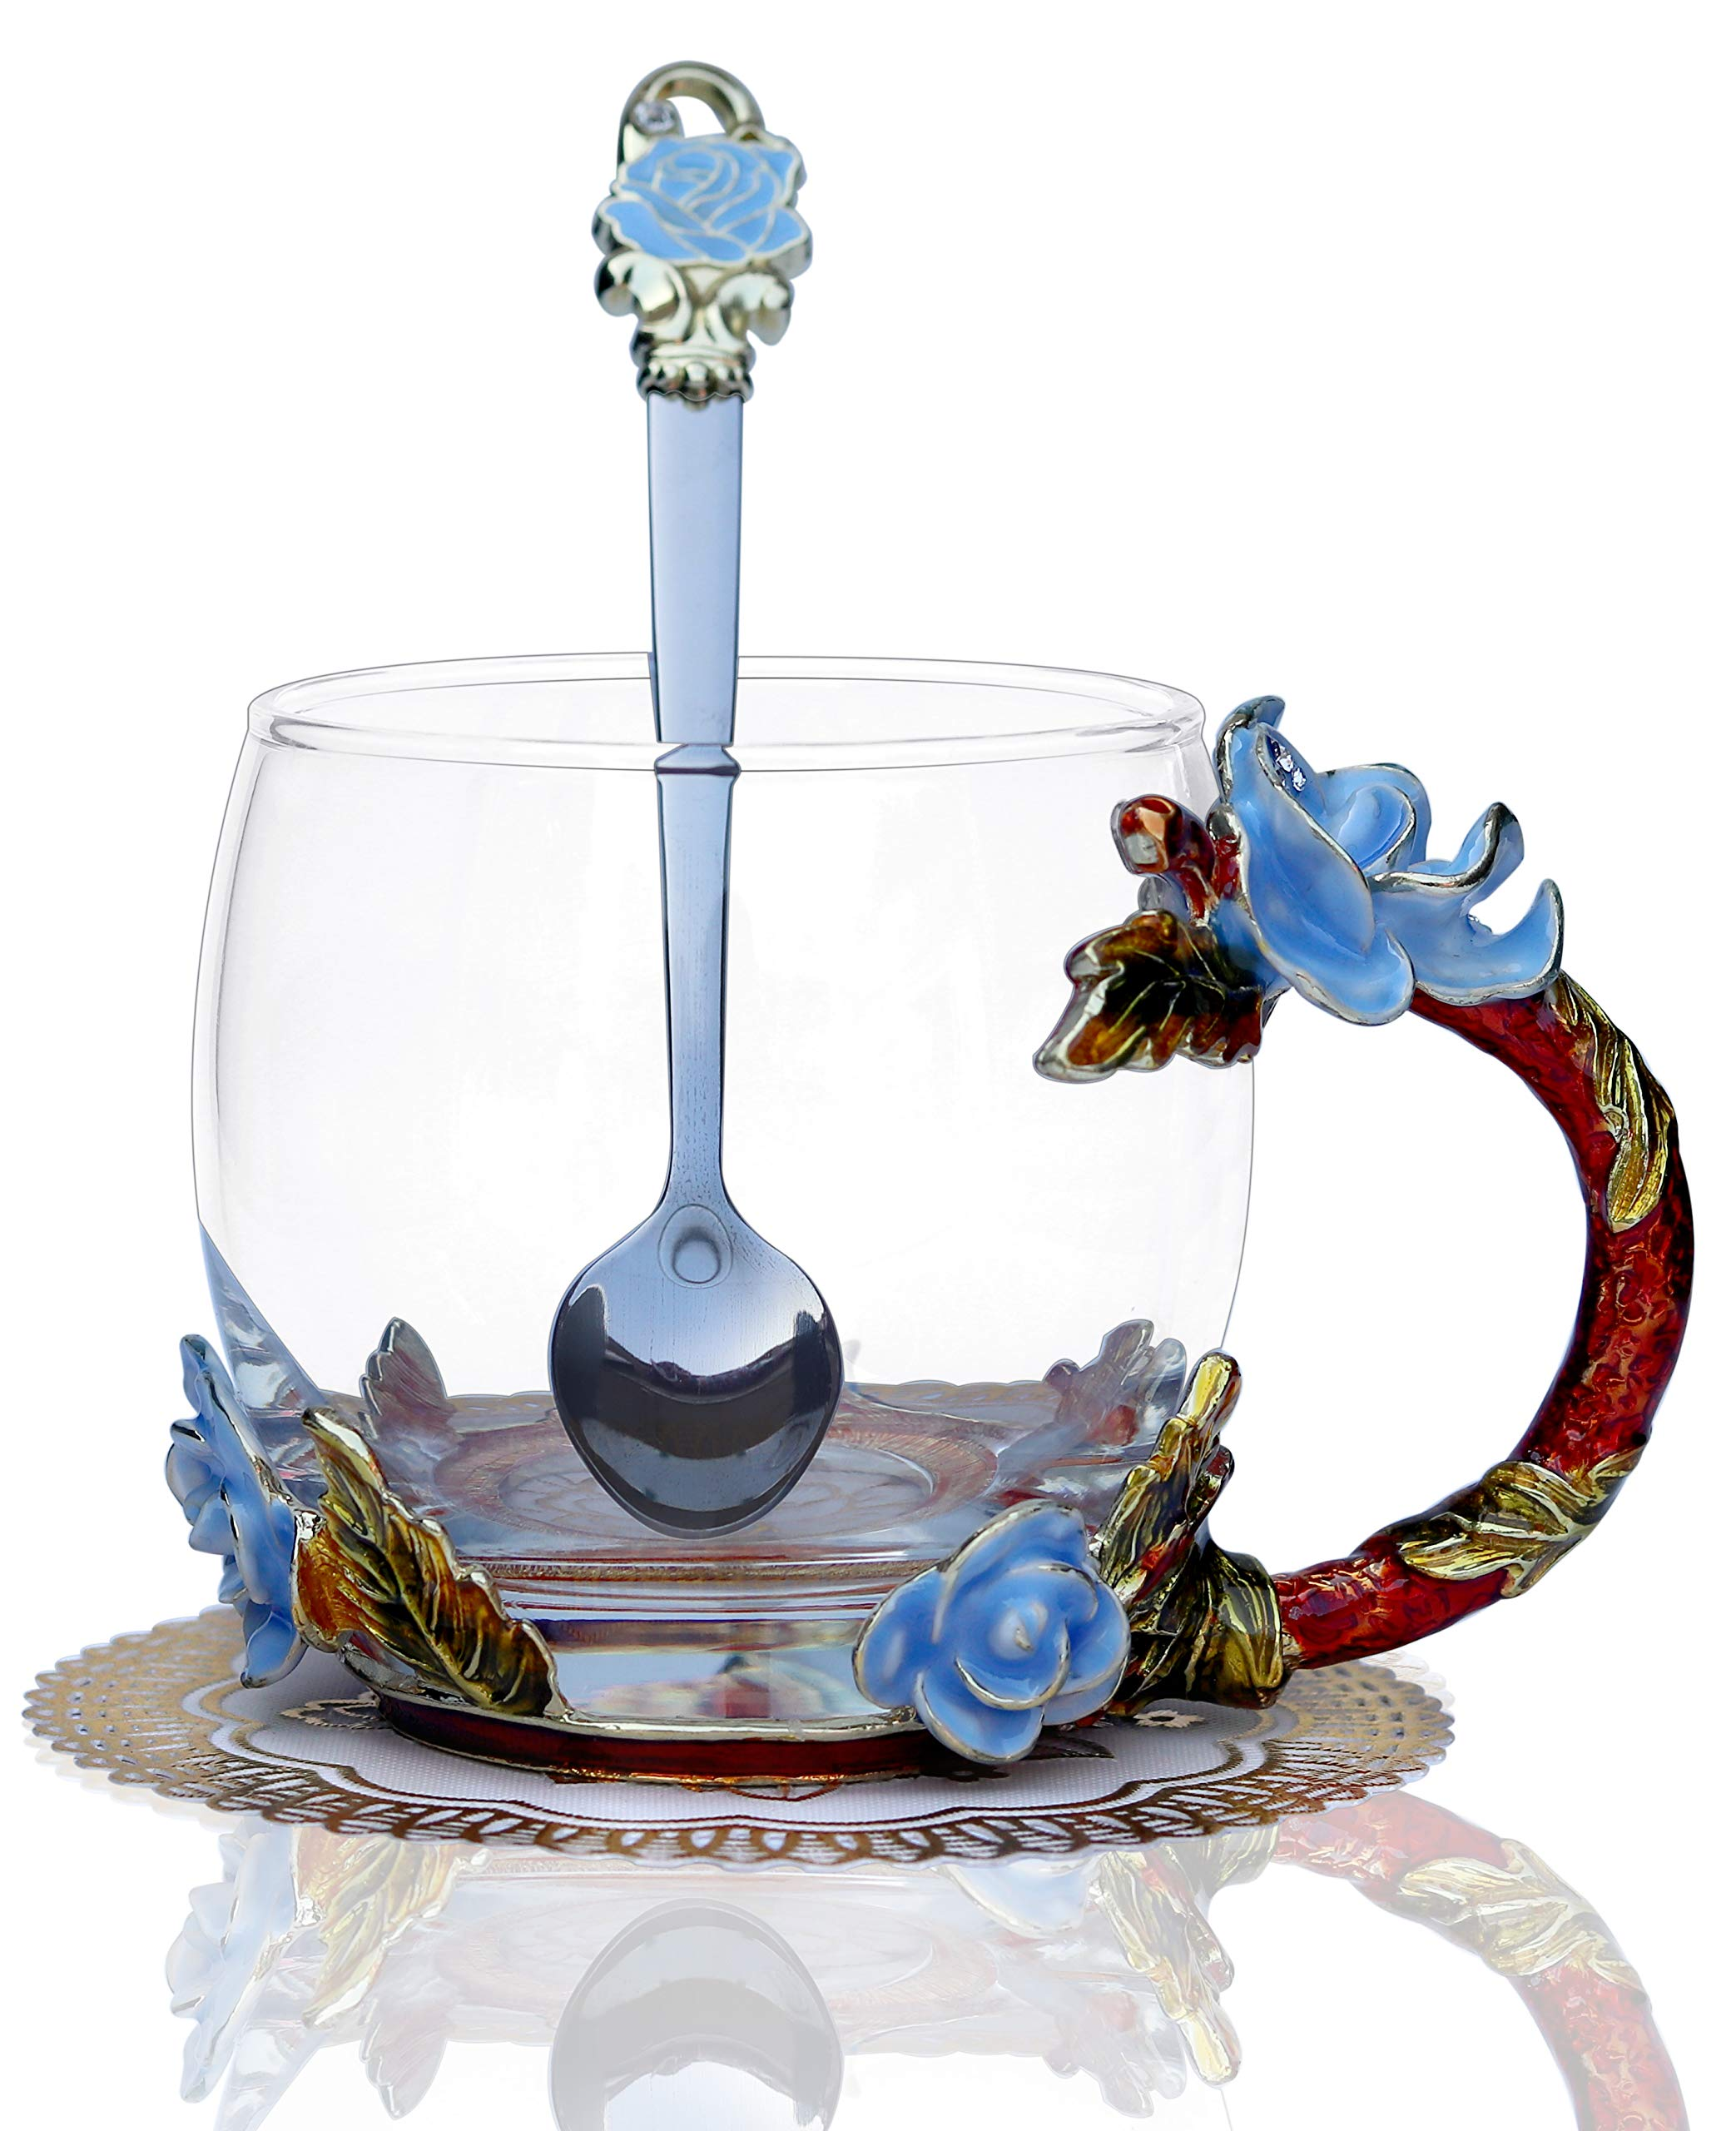 BothEarn Clear Blue Rose Tea Cup with Handle Handmade 3D Enamel Coffee Mug Set with Flower Spoon for Cappuccino Latte in Anniversary Party Wedding